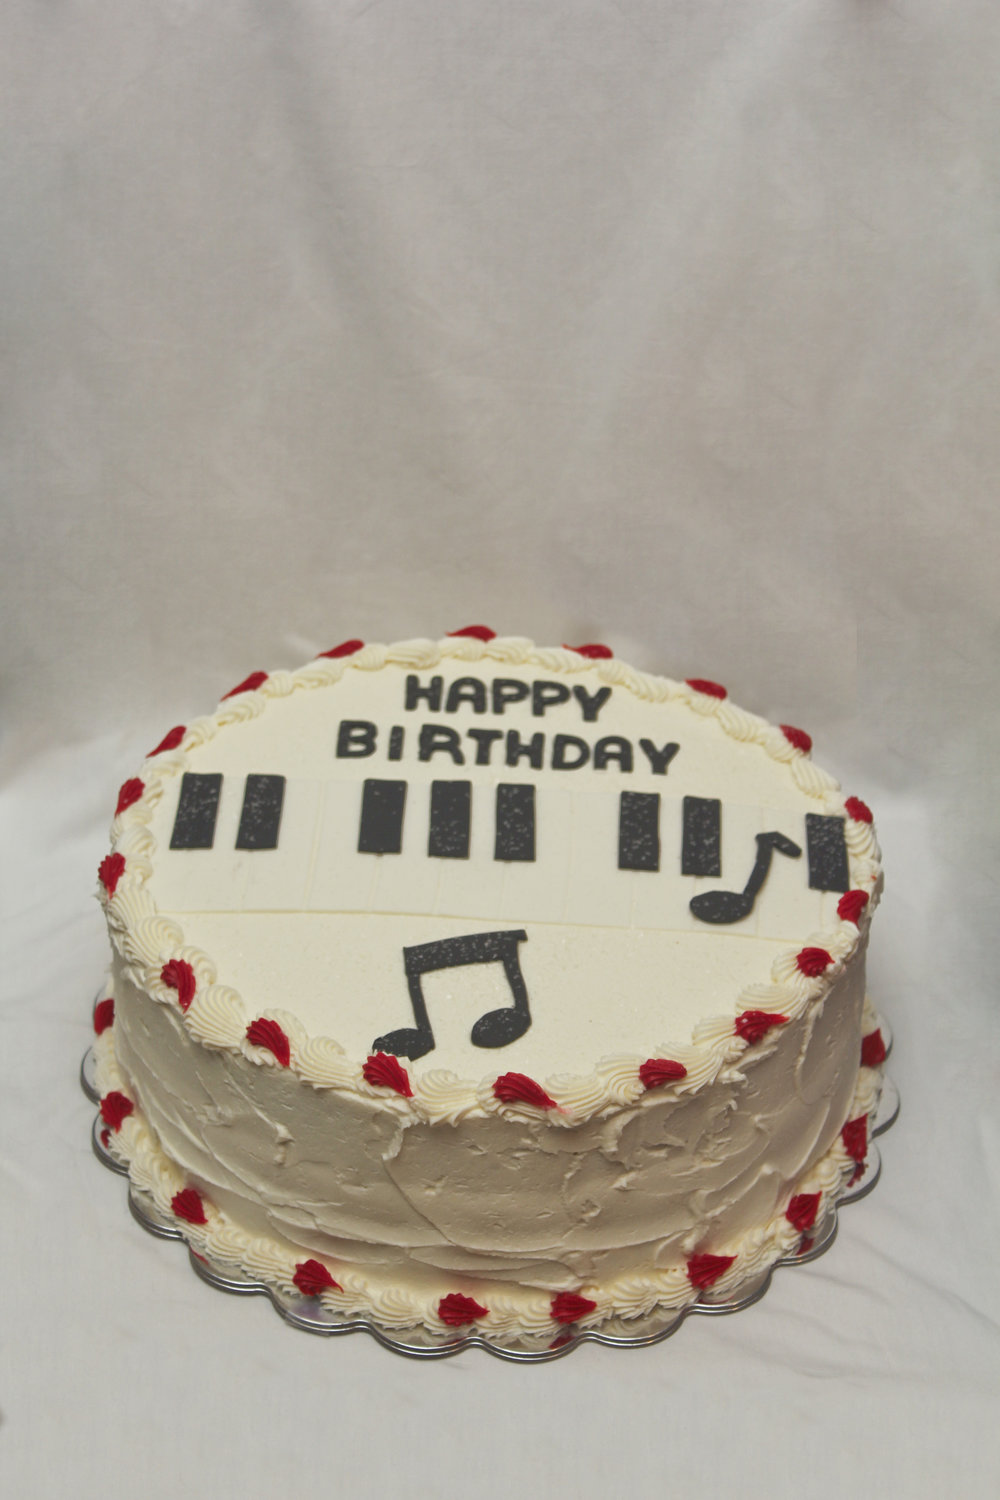 Musical birthday cake decorated with music notes and piano keys made of fondant.